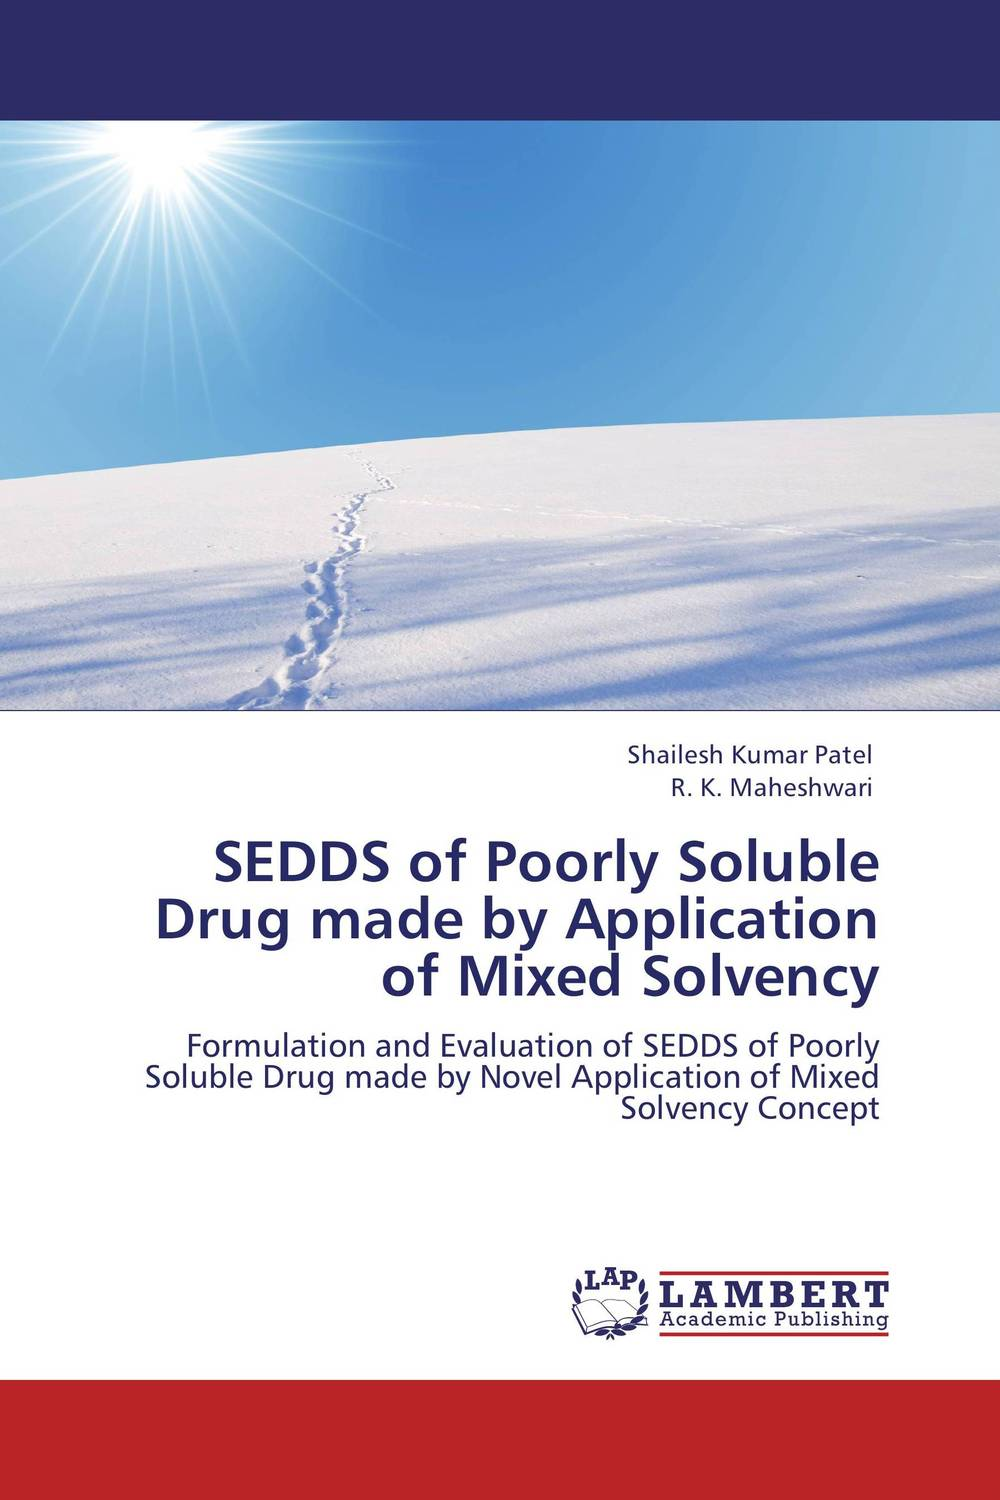 SEDDS of Poorly Soluble Drug made by Application of Mixed Solvency david buckham executive s guide to solvency ii